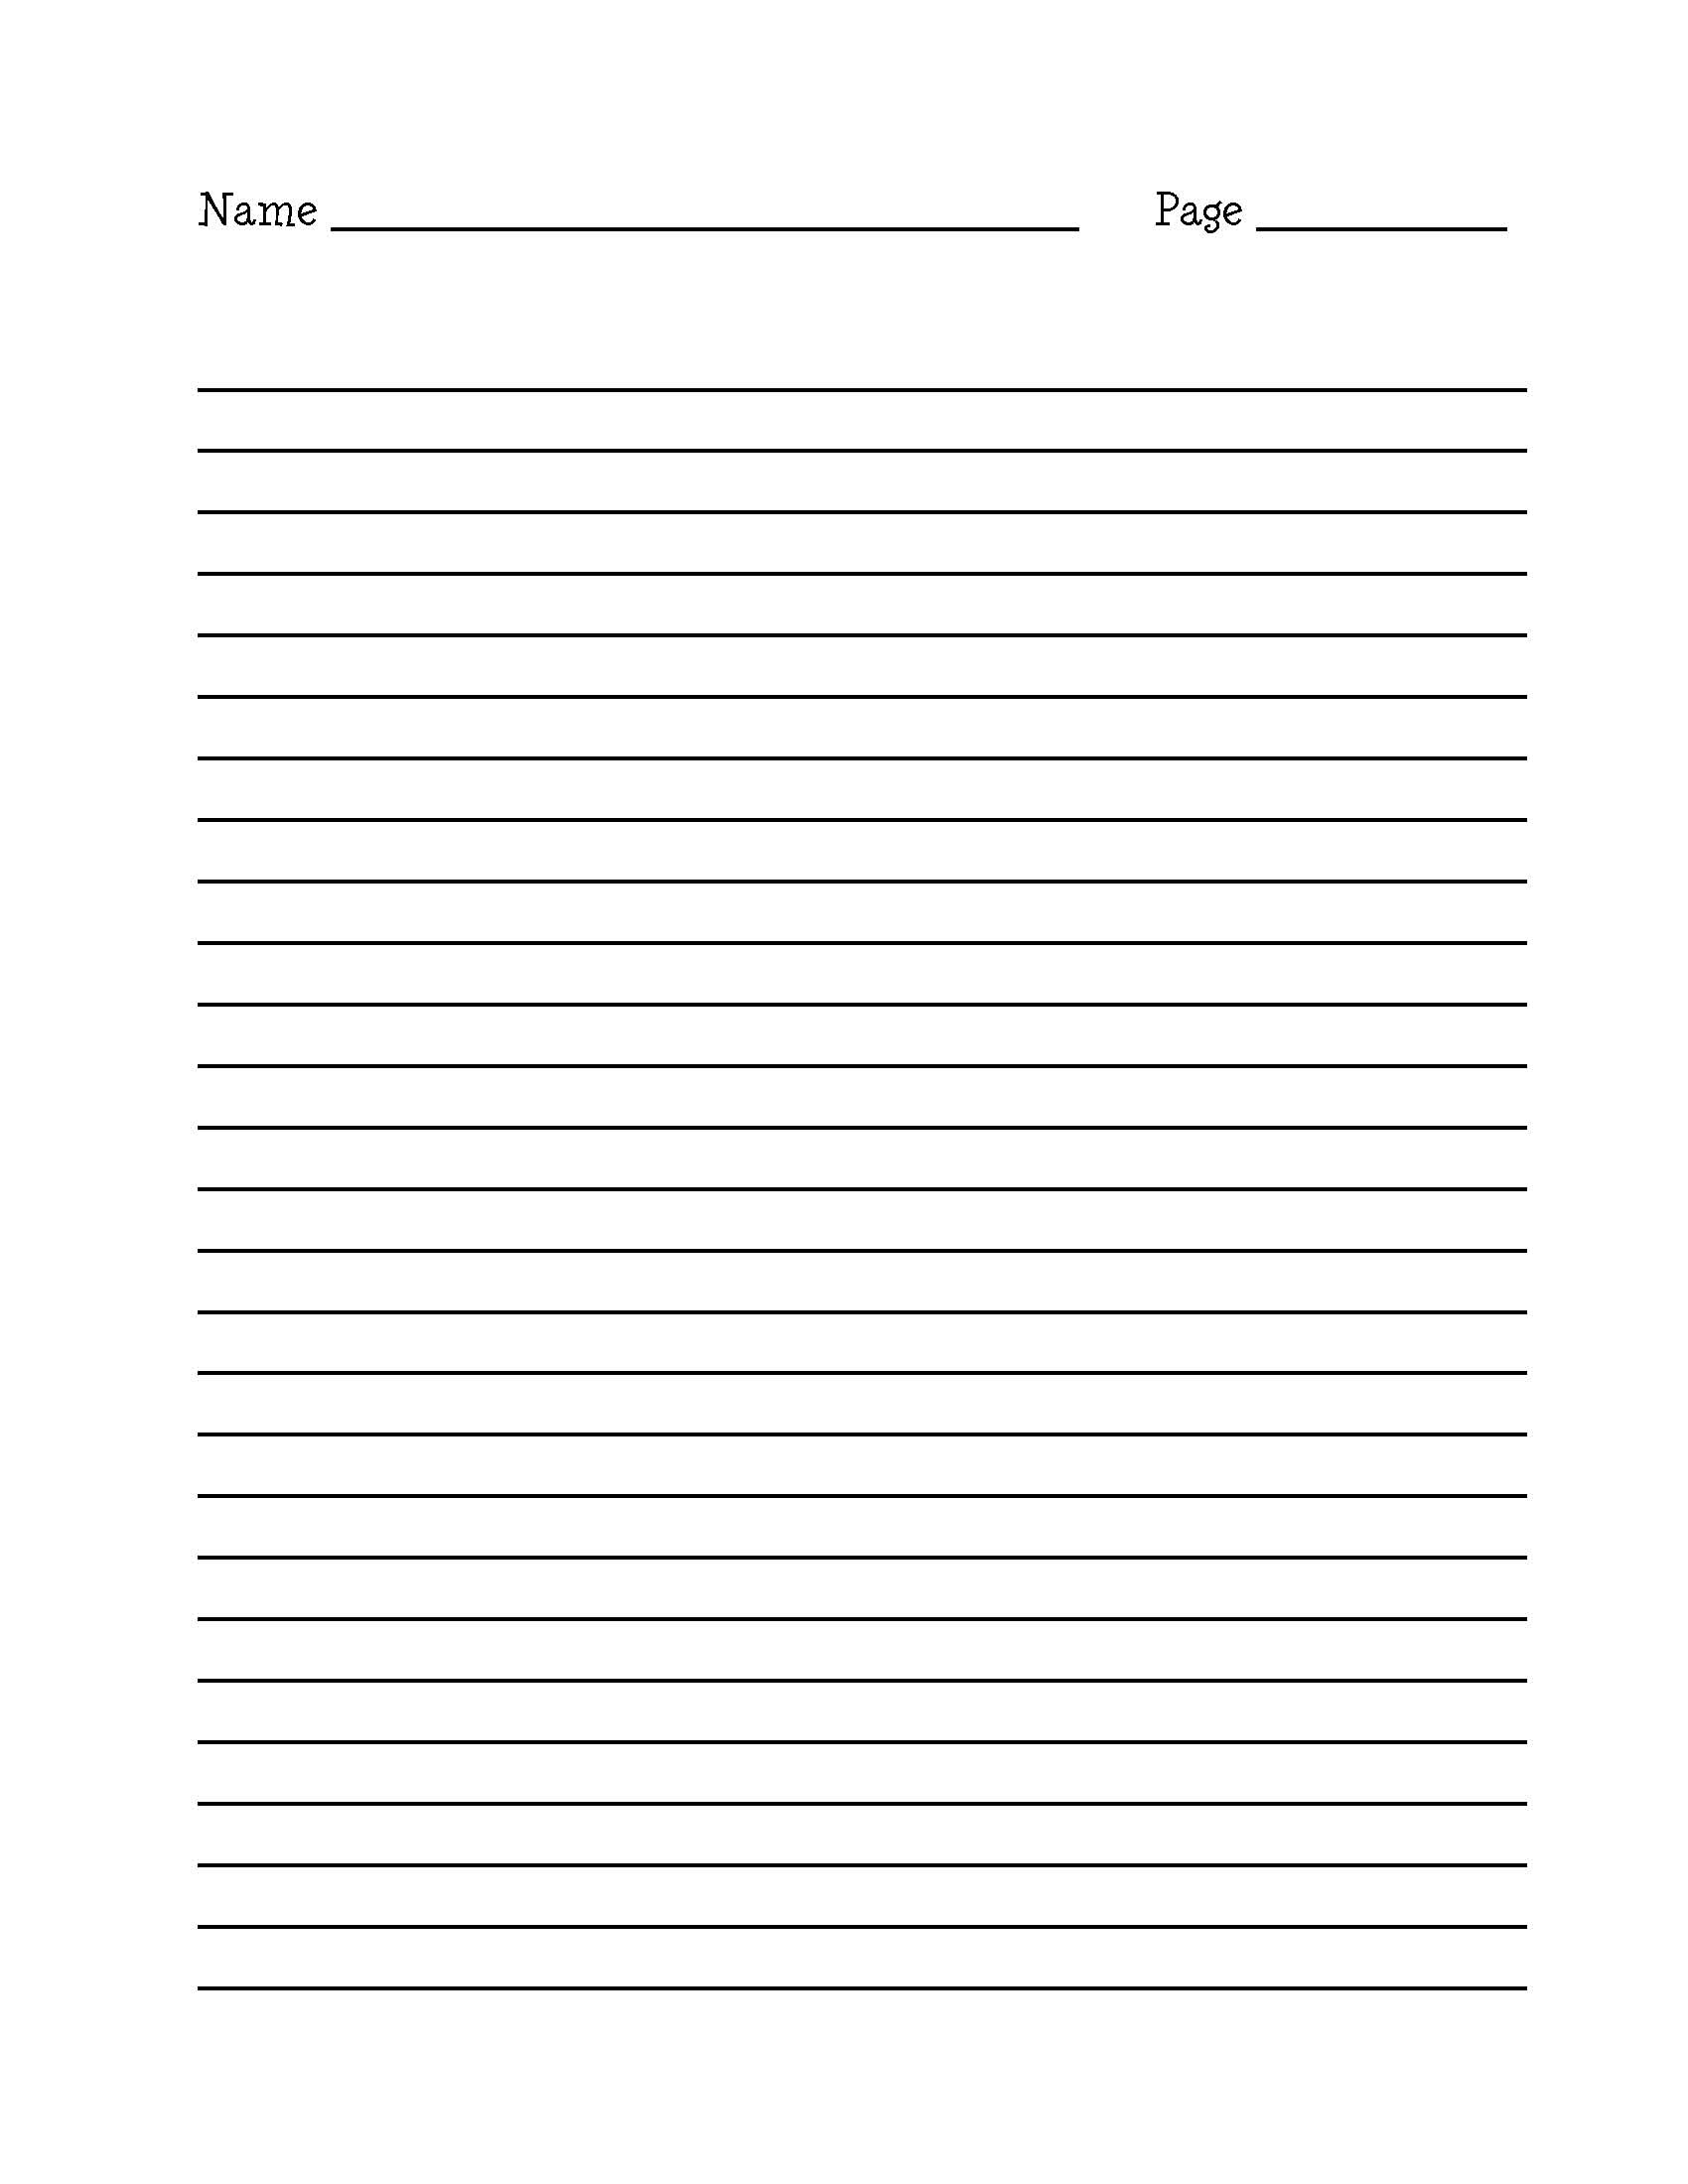 Printable Lined Writing Paper Pdf | Corner Of Chart And Menu - Free Printable Lined Writing Paper